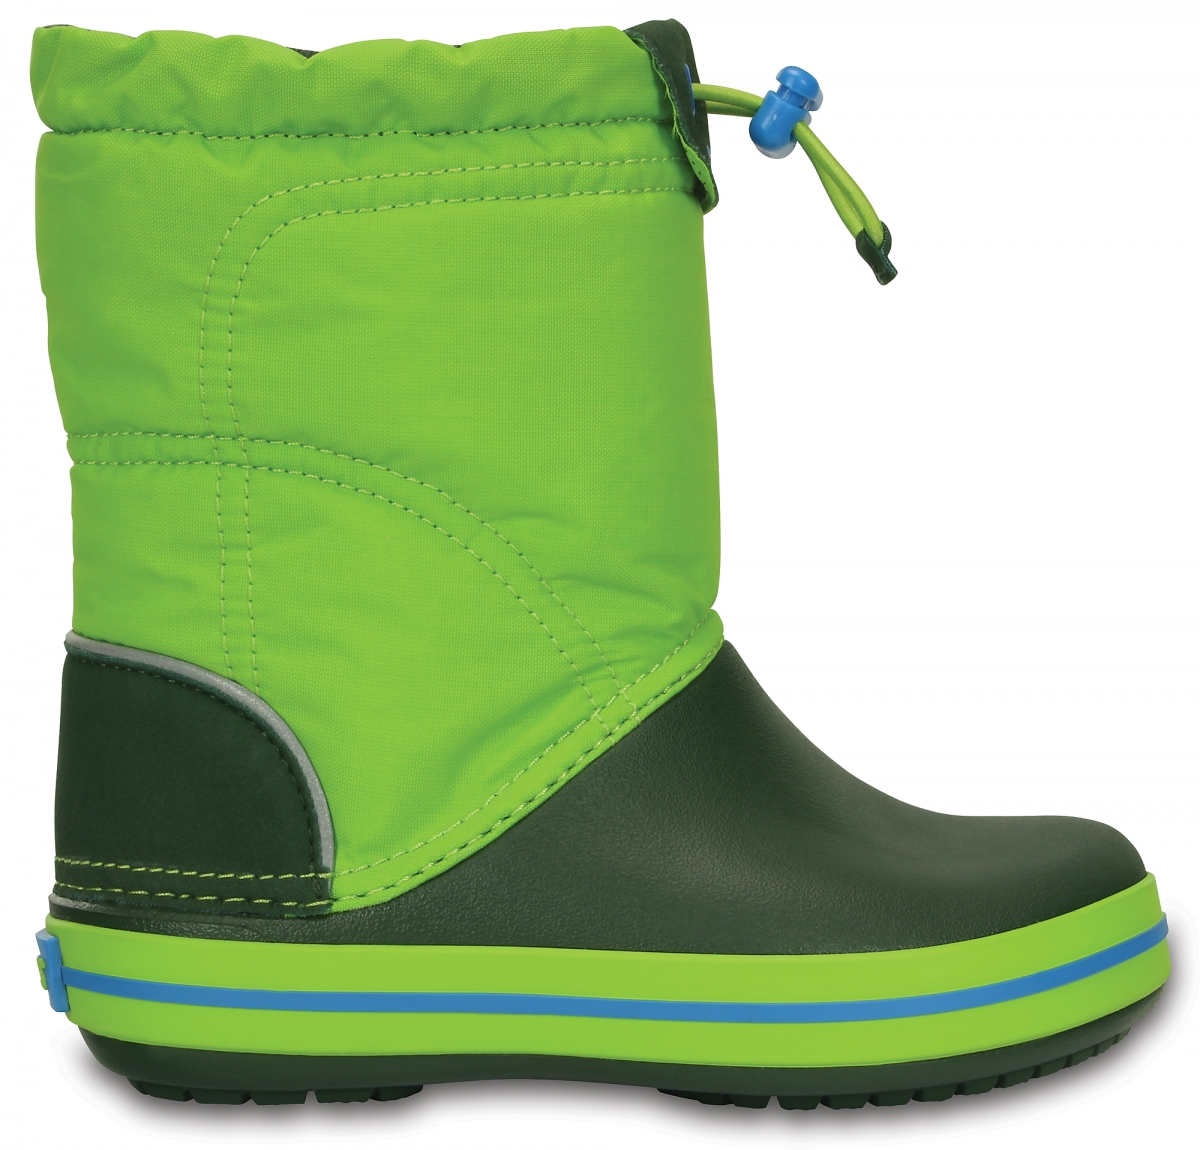 Crocs Crocband LodgePoint Boot Kids Lime/Forest Green, J2 (33-34)